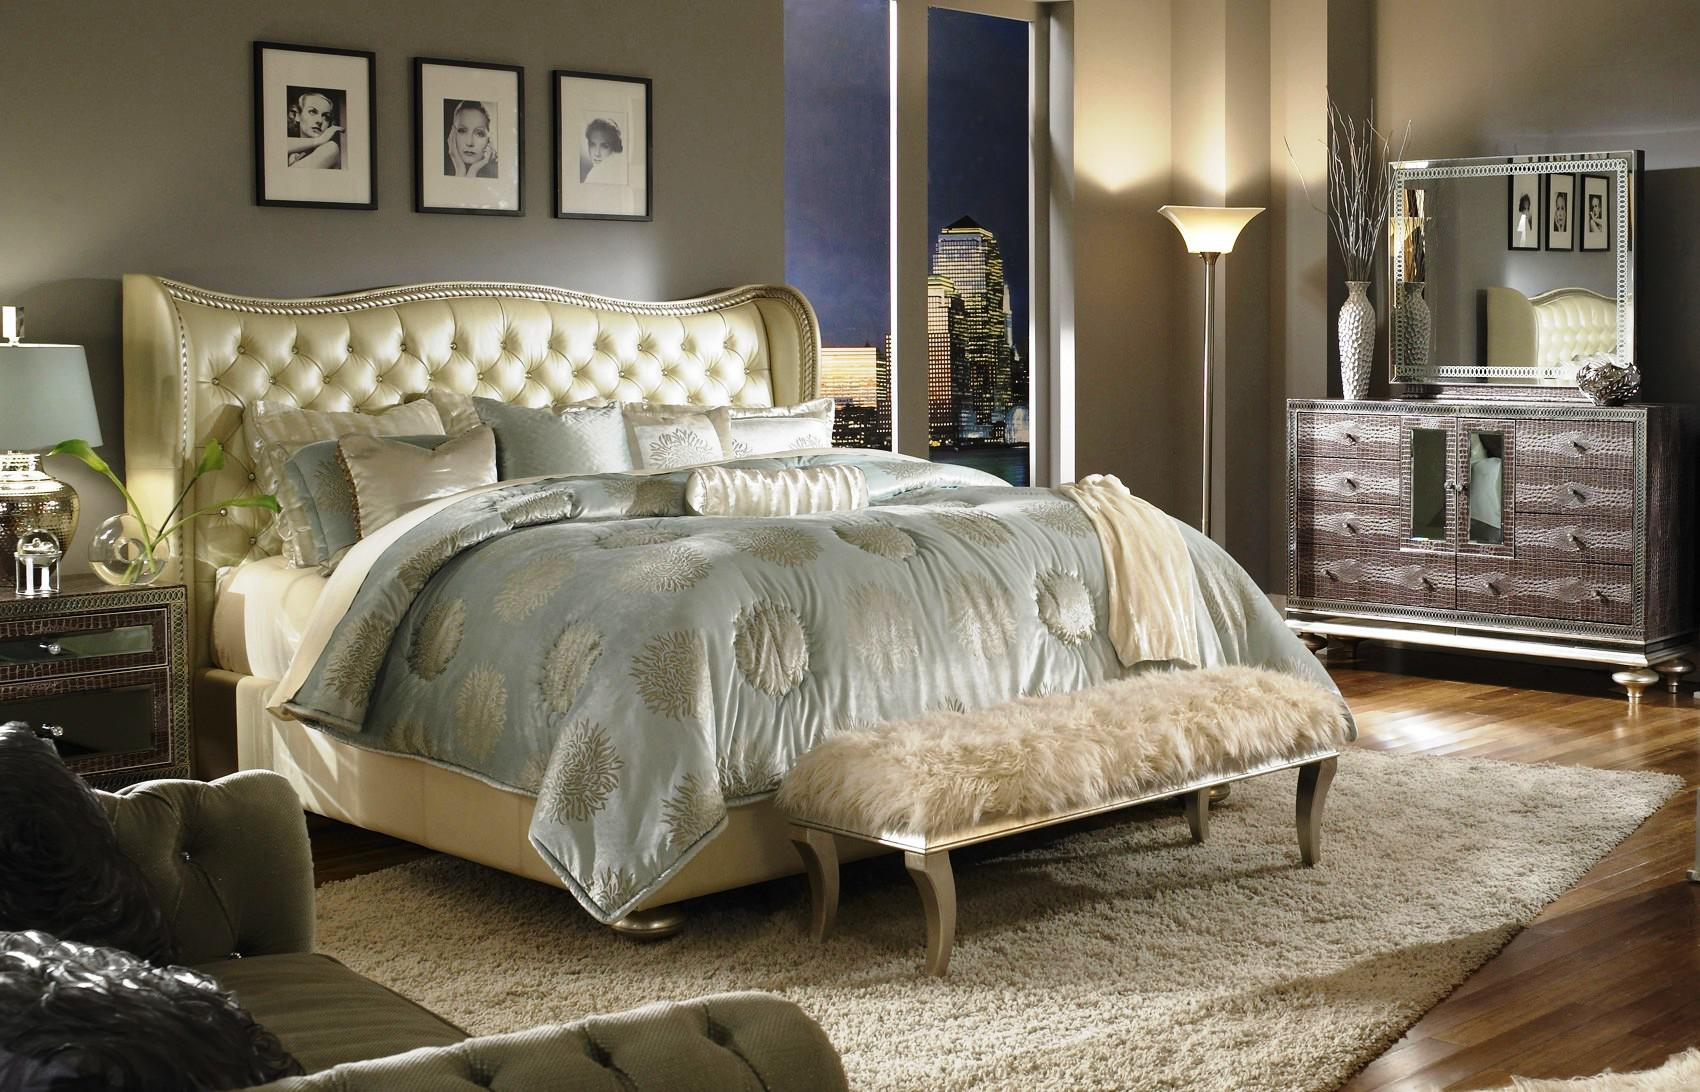 Image of: Headboard Designs For King Size Beds